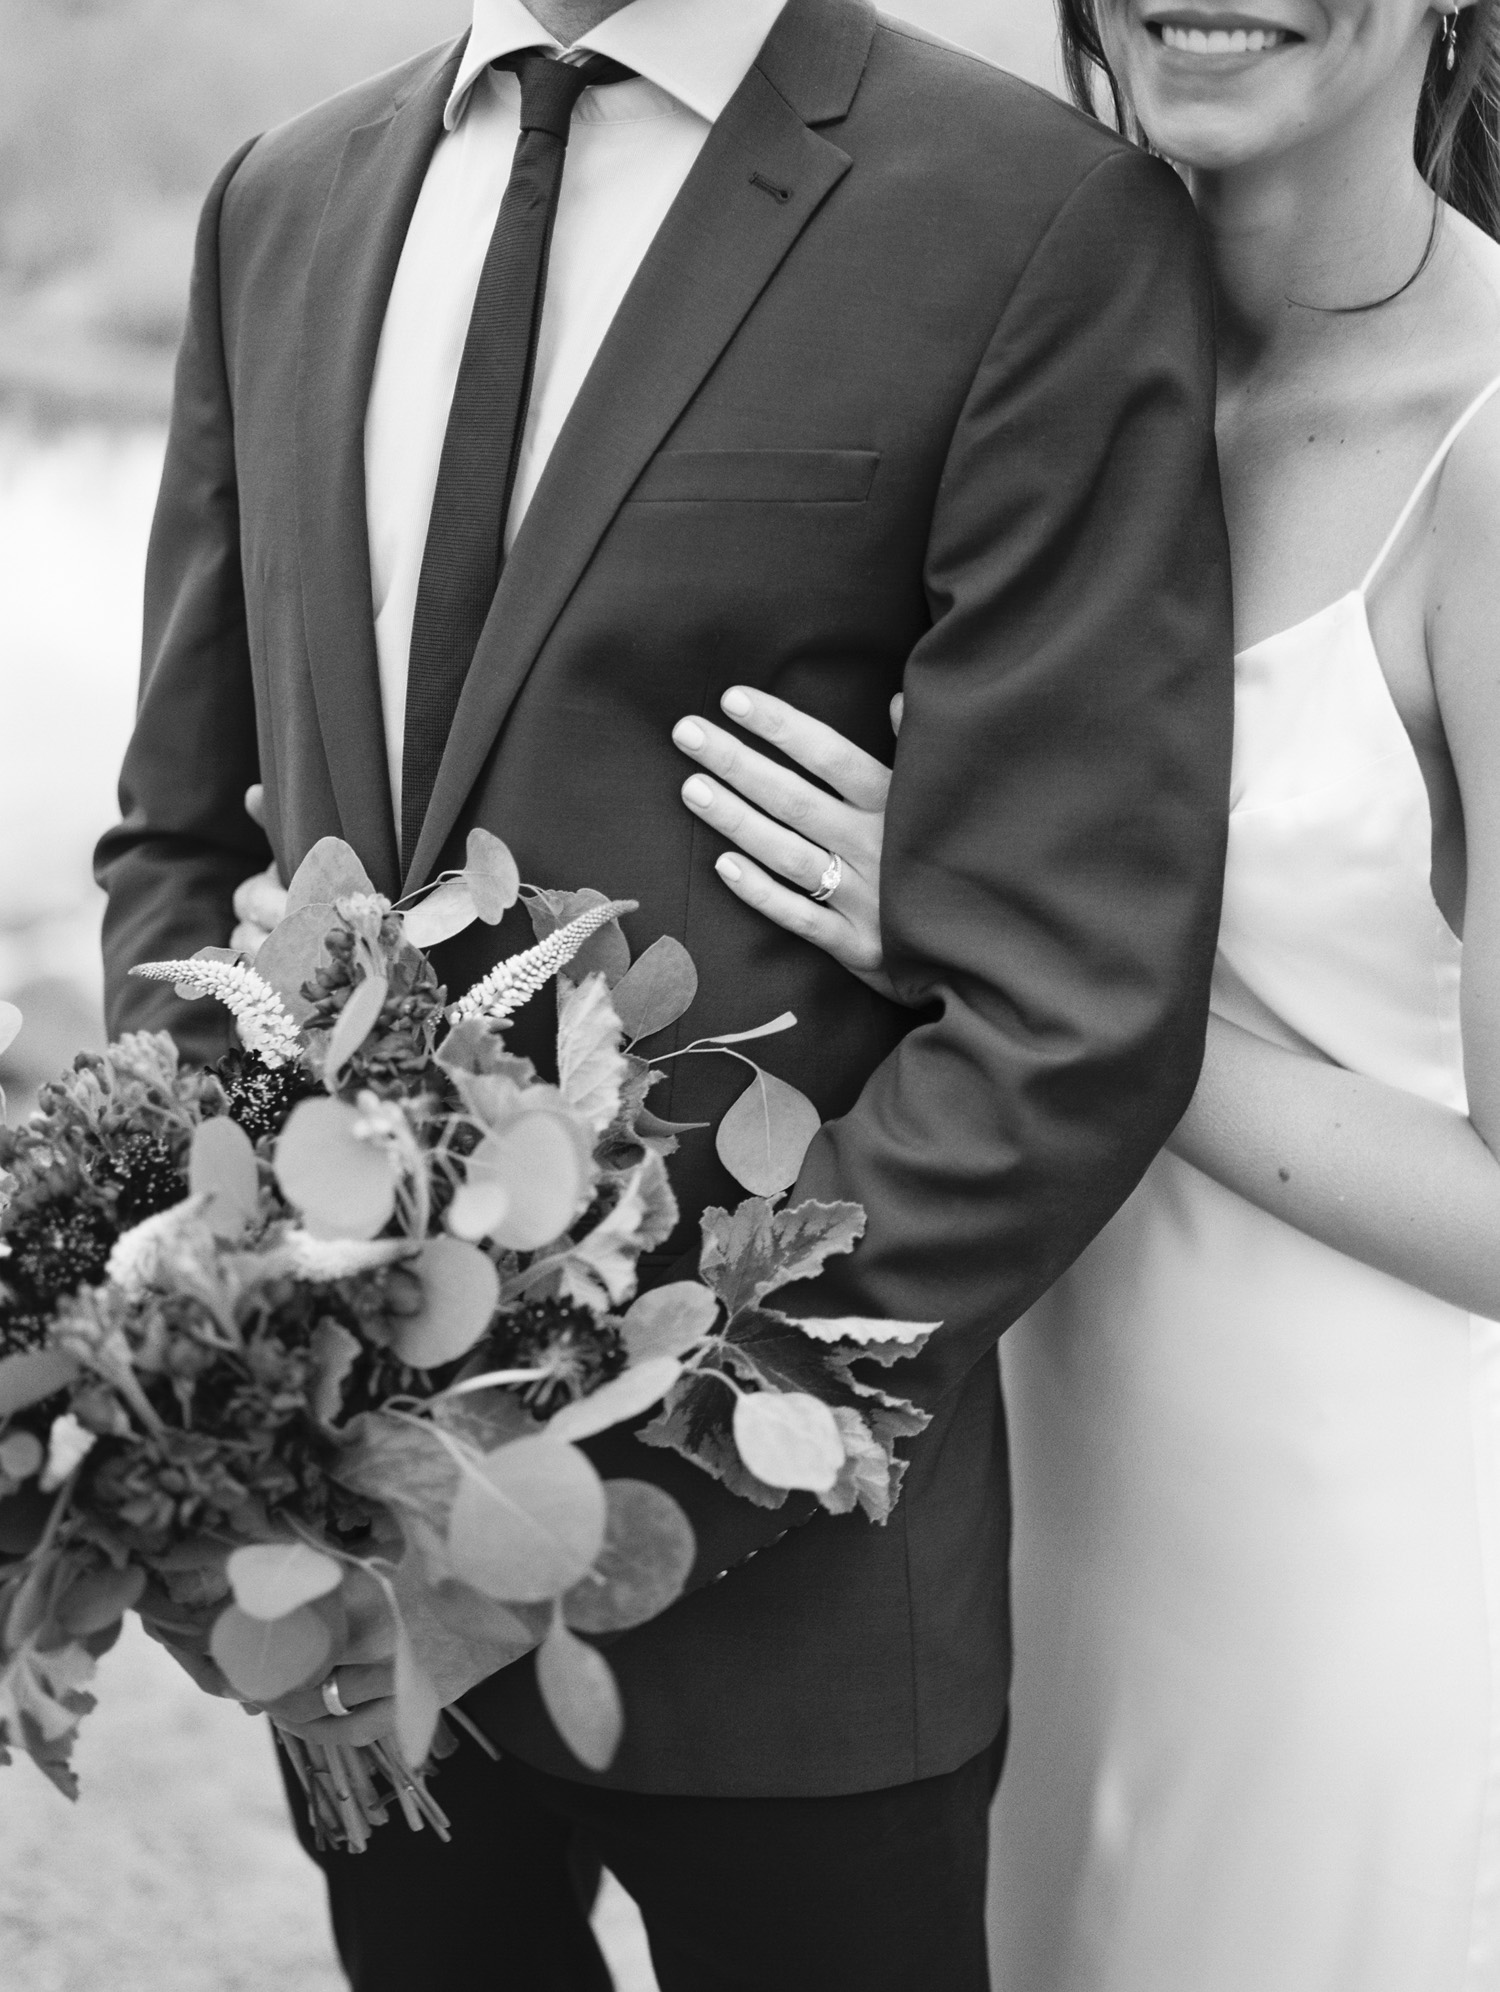 Black and white photo of groom holding bouquet and bride smiling and hugging her groom.